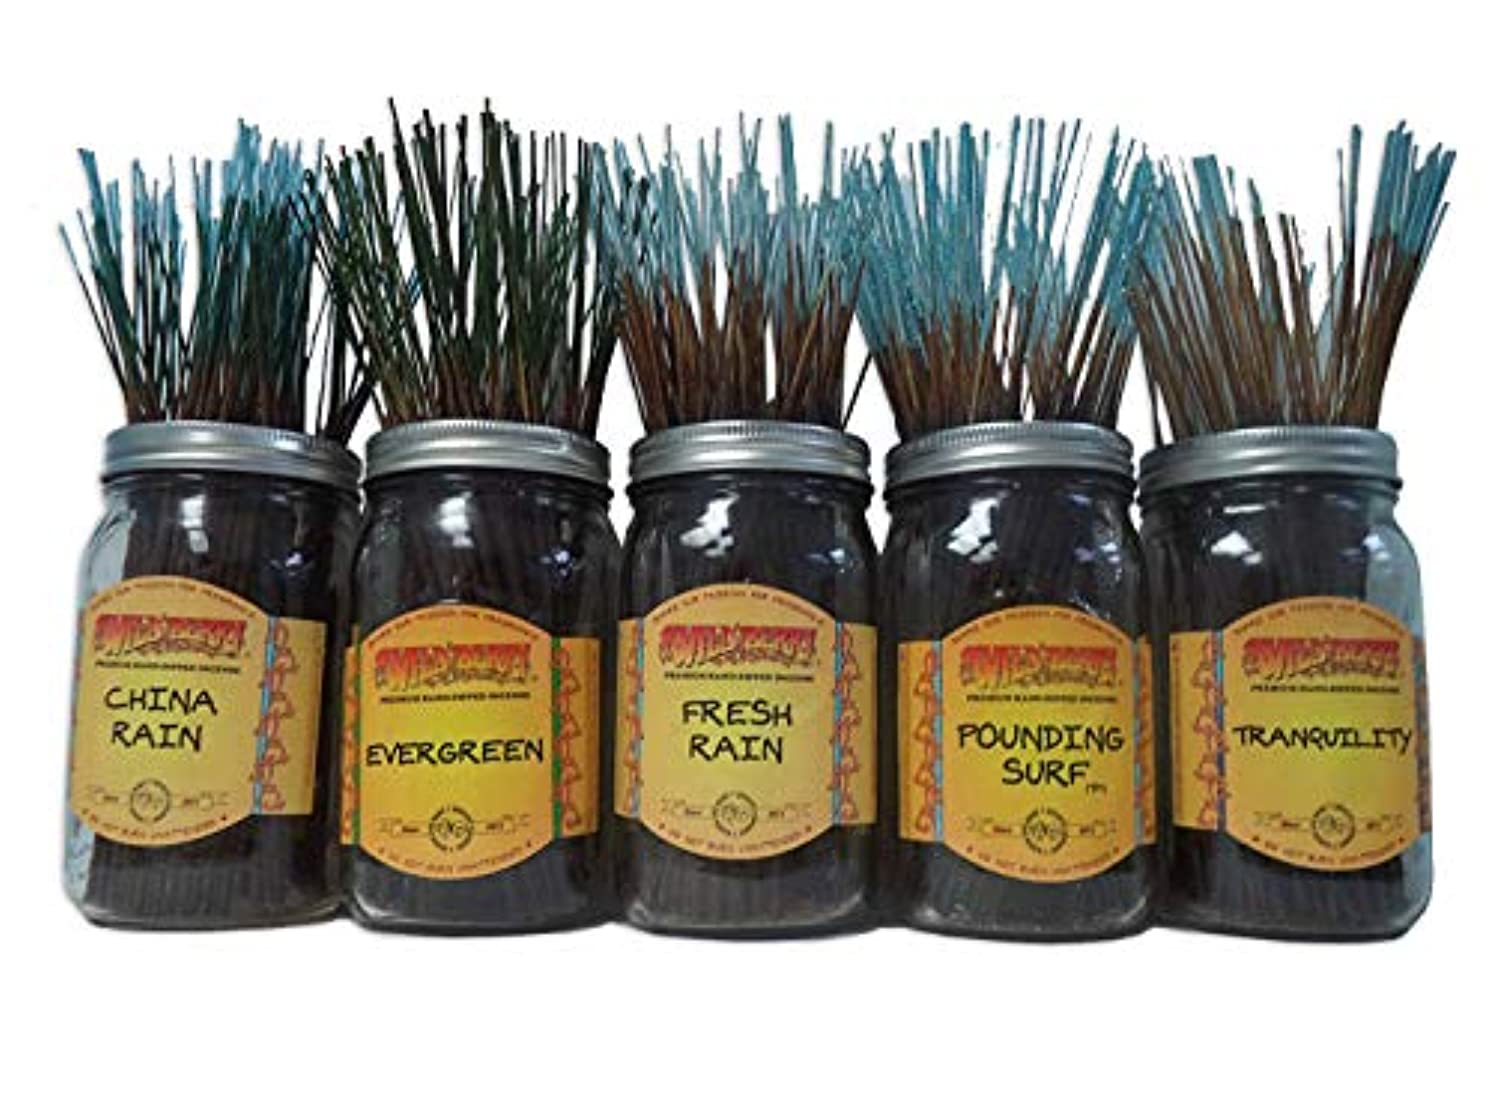 交響曲ブルジョン曇ったWildberry Incense Sticks Fresh & Clean Scentsセット# 1 : 20 Sticks各5の香り、合計100 Sticks 。